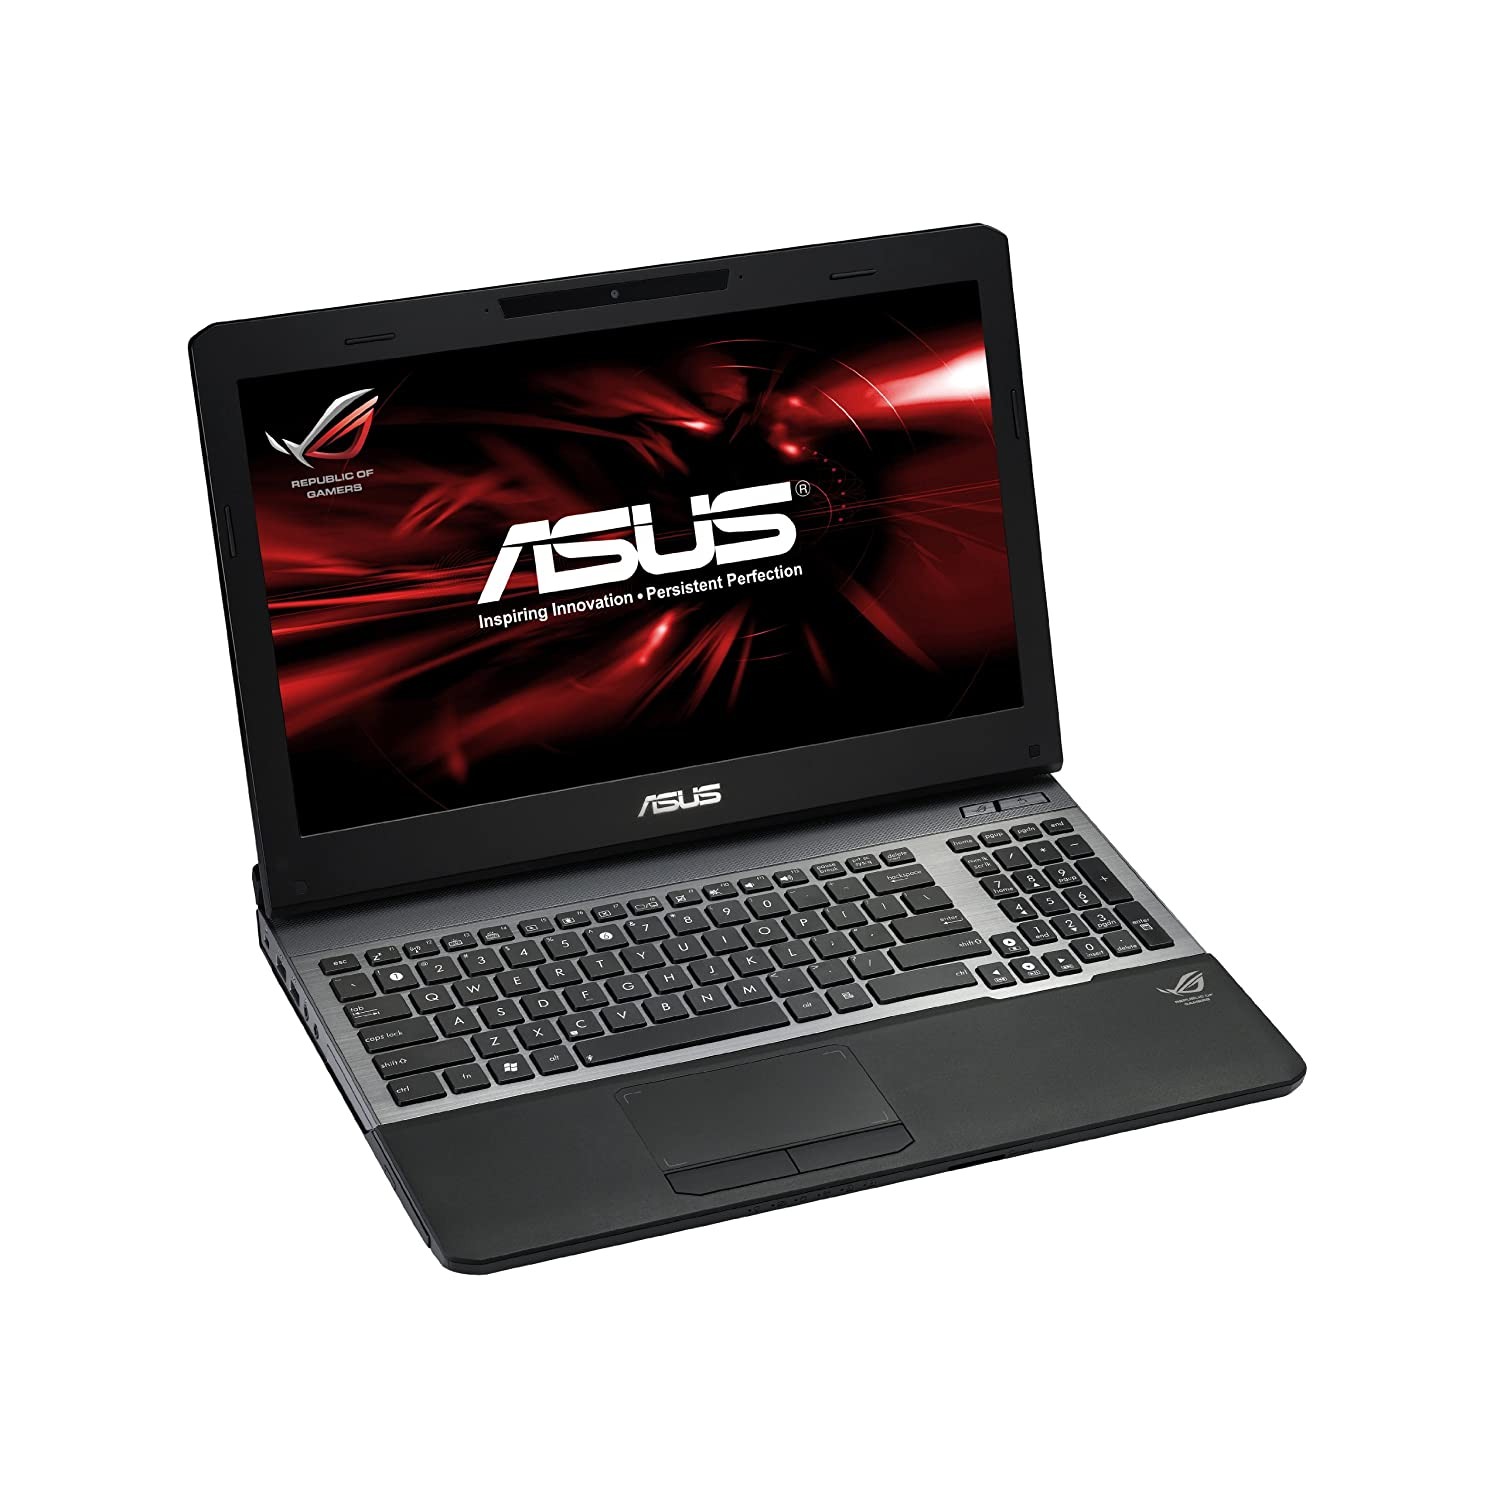 ASUS Republic of Gamers G55VW-DH71 15.6-Inch Laptop